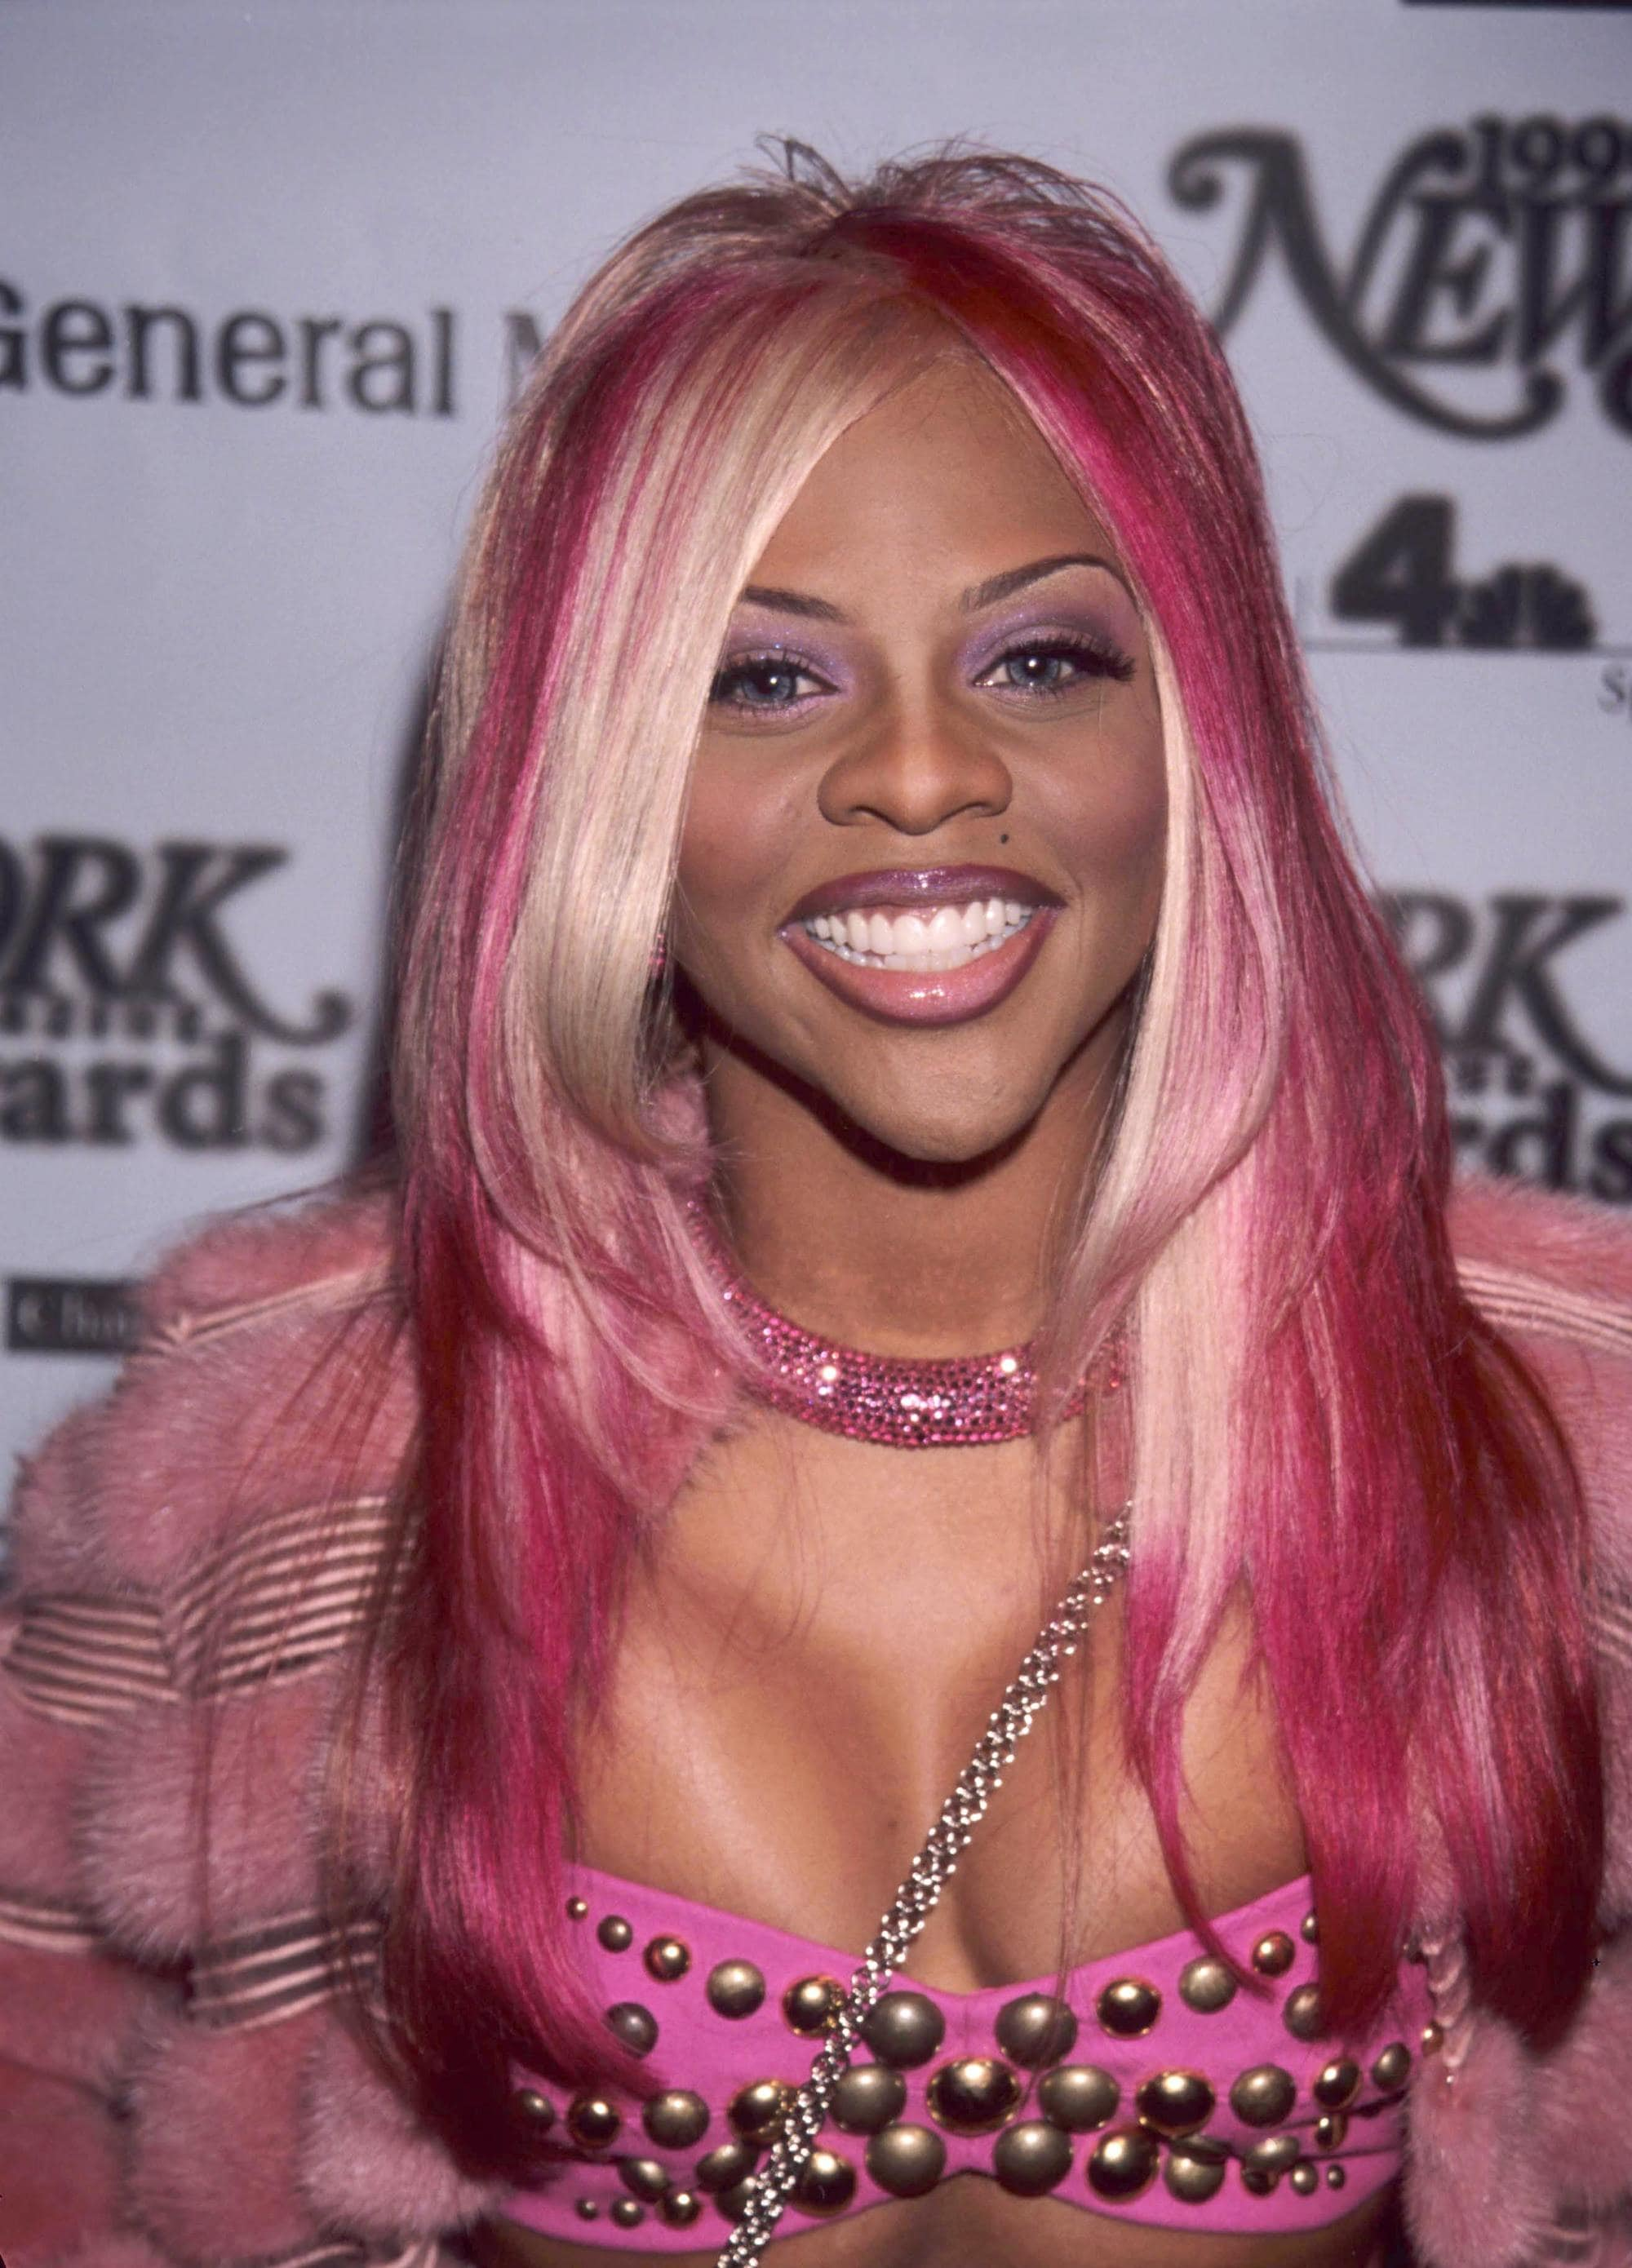 Lil Kim with multi-toned pink highlighted hair